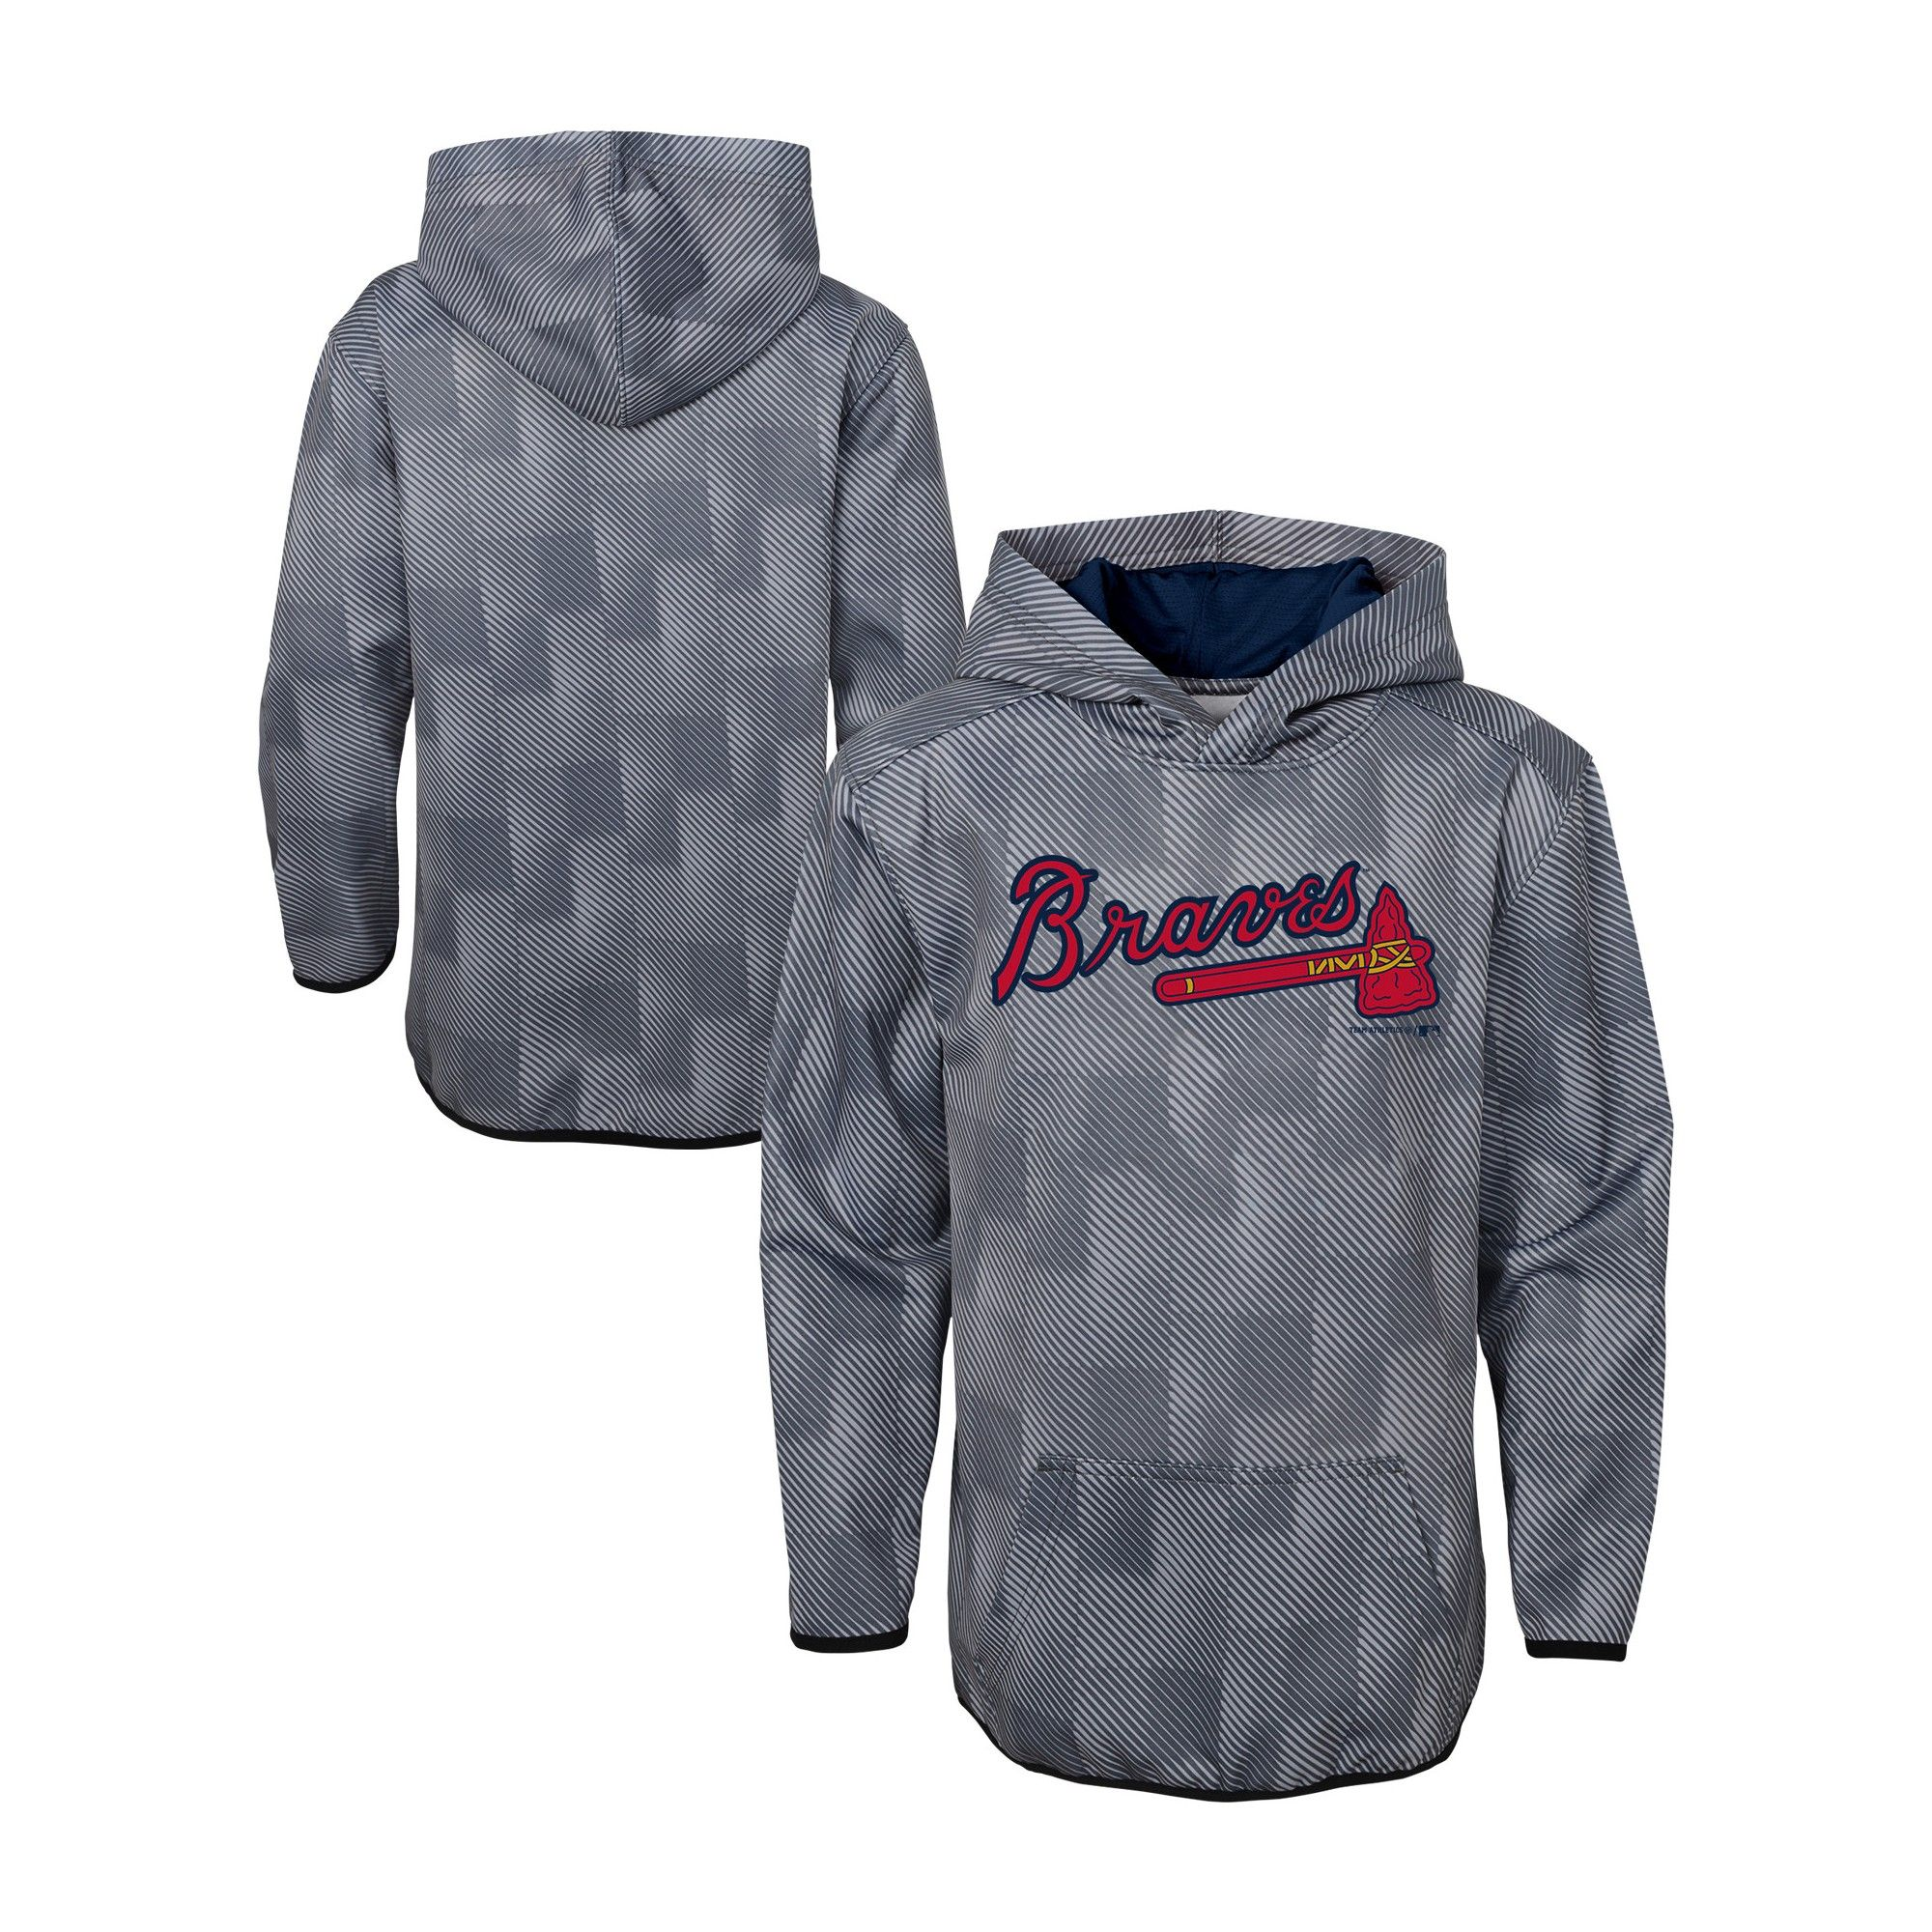 Mlb Atlanta Braves Boys First Pitch Gray Poly Hoodie M Size Medium Multicolored Hoodies Sport Outfits Hooded Sweatshirts